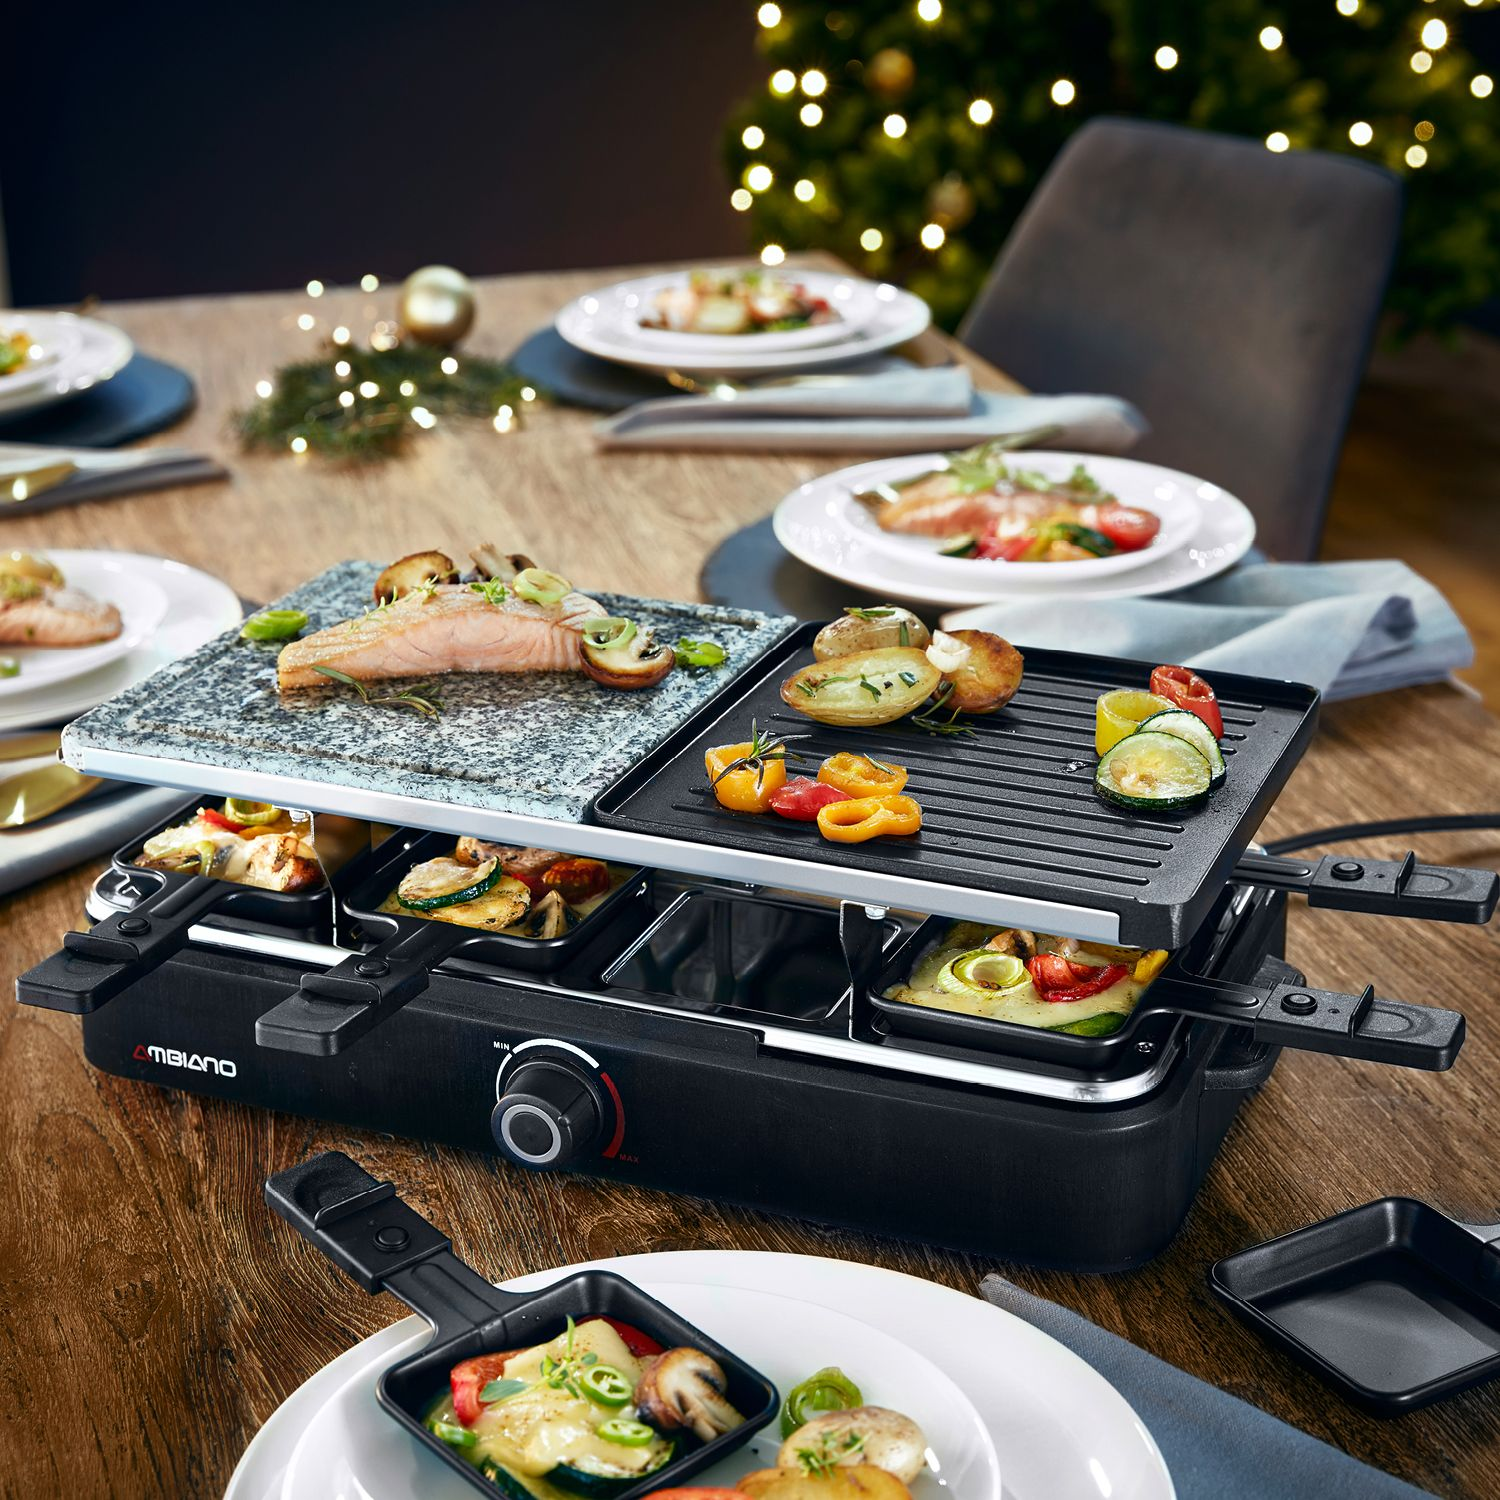 AMBIANO Raclette-Grill*